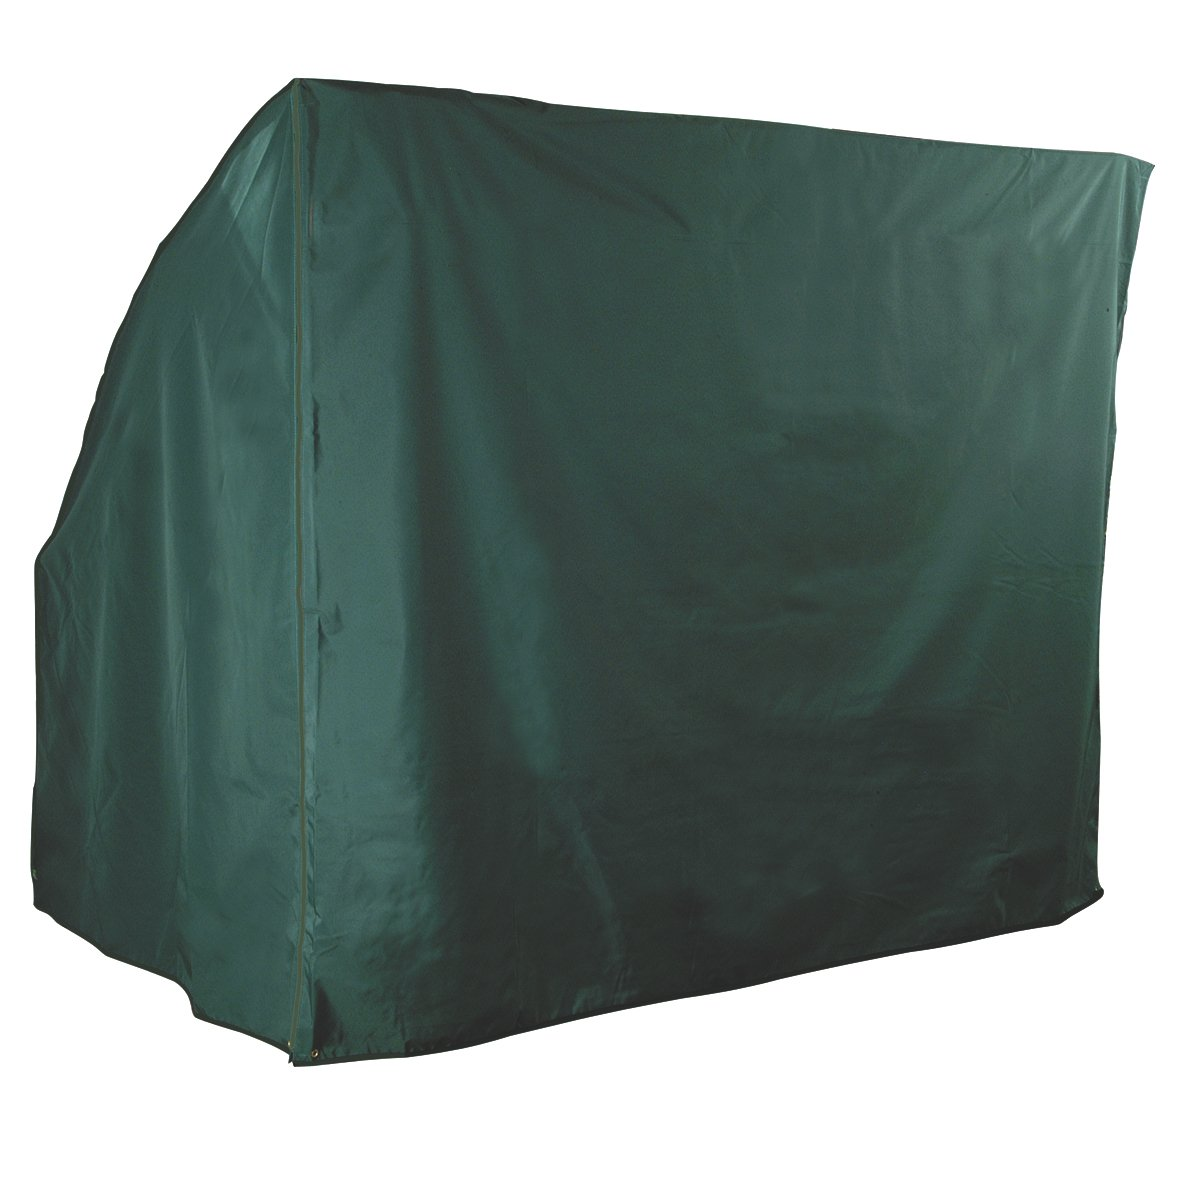 Bosmere C505 Weatherproof Outdoor Swing Seat Cover, 86'' L x 49'' W x 67'' H, Green